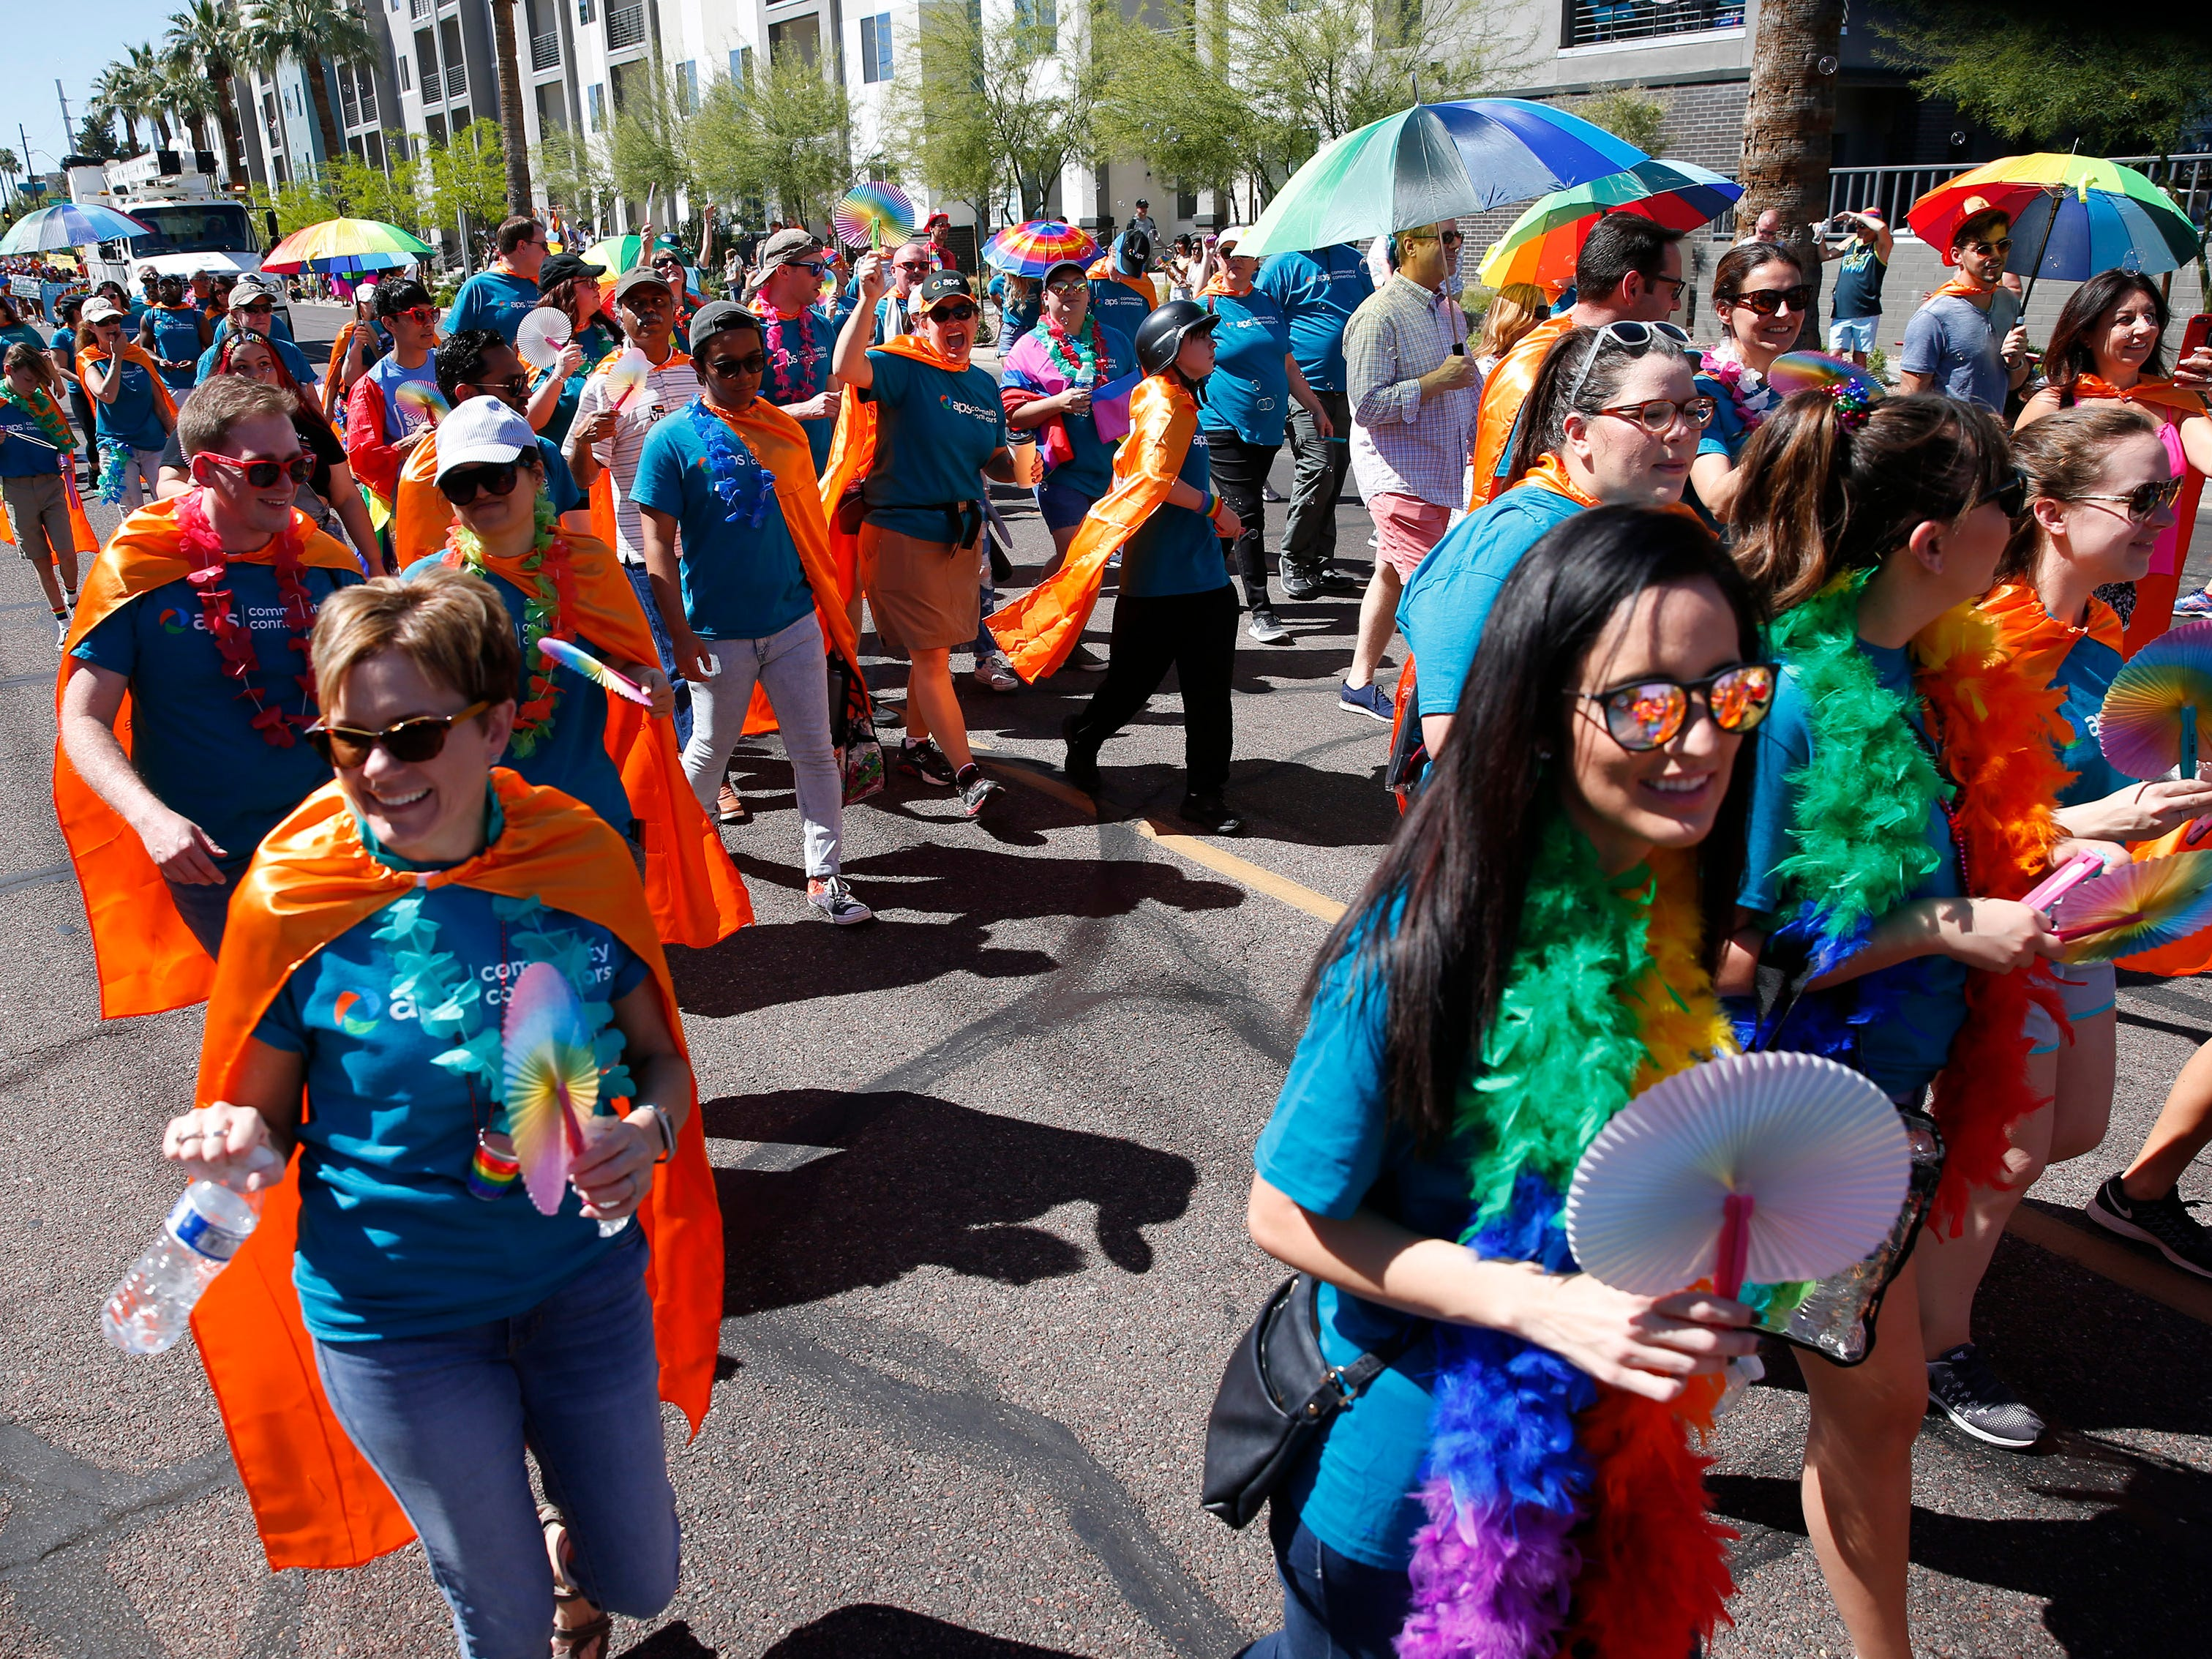 Participants with APS march during the Phoenix Pride Parade on April 7, 2019.